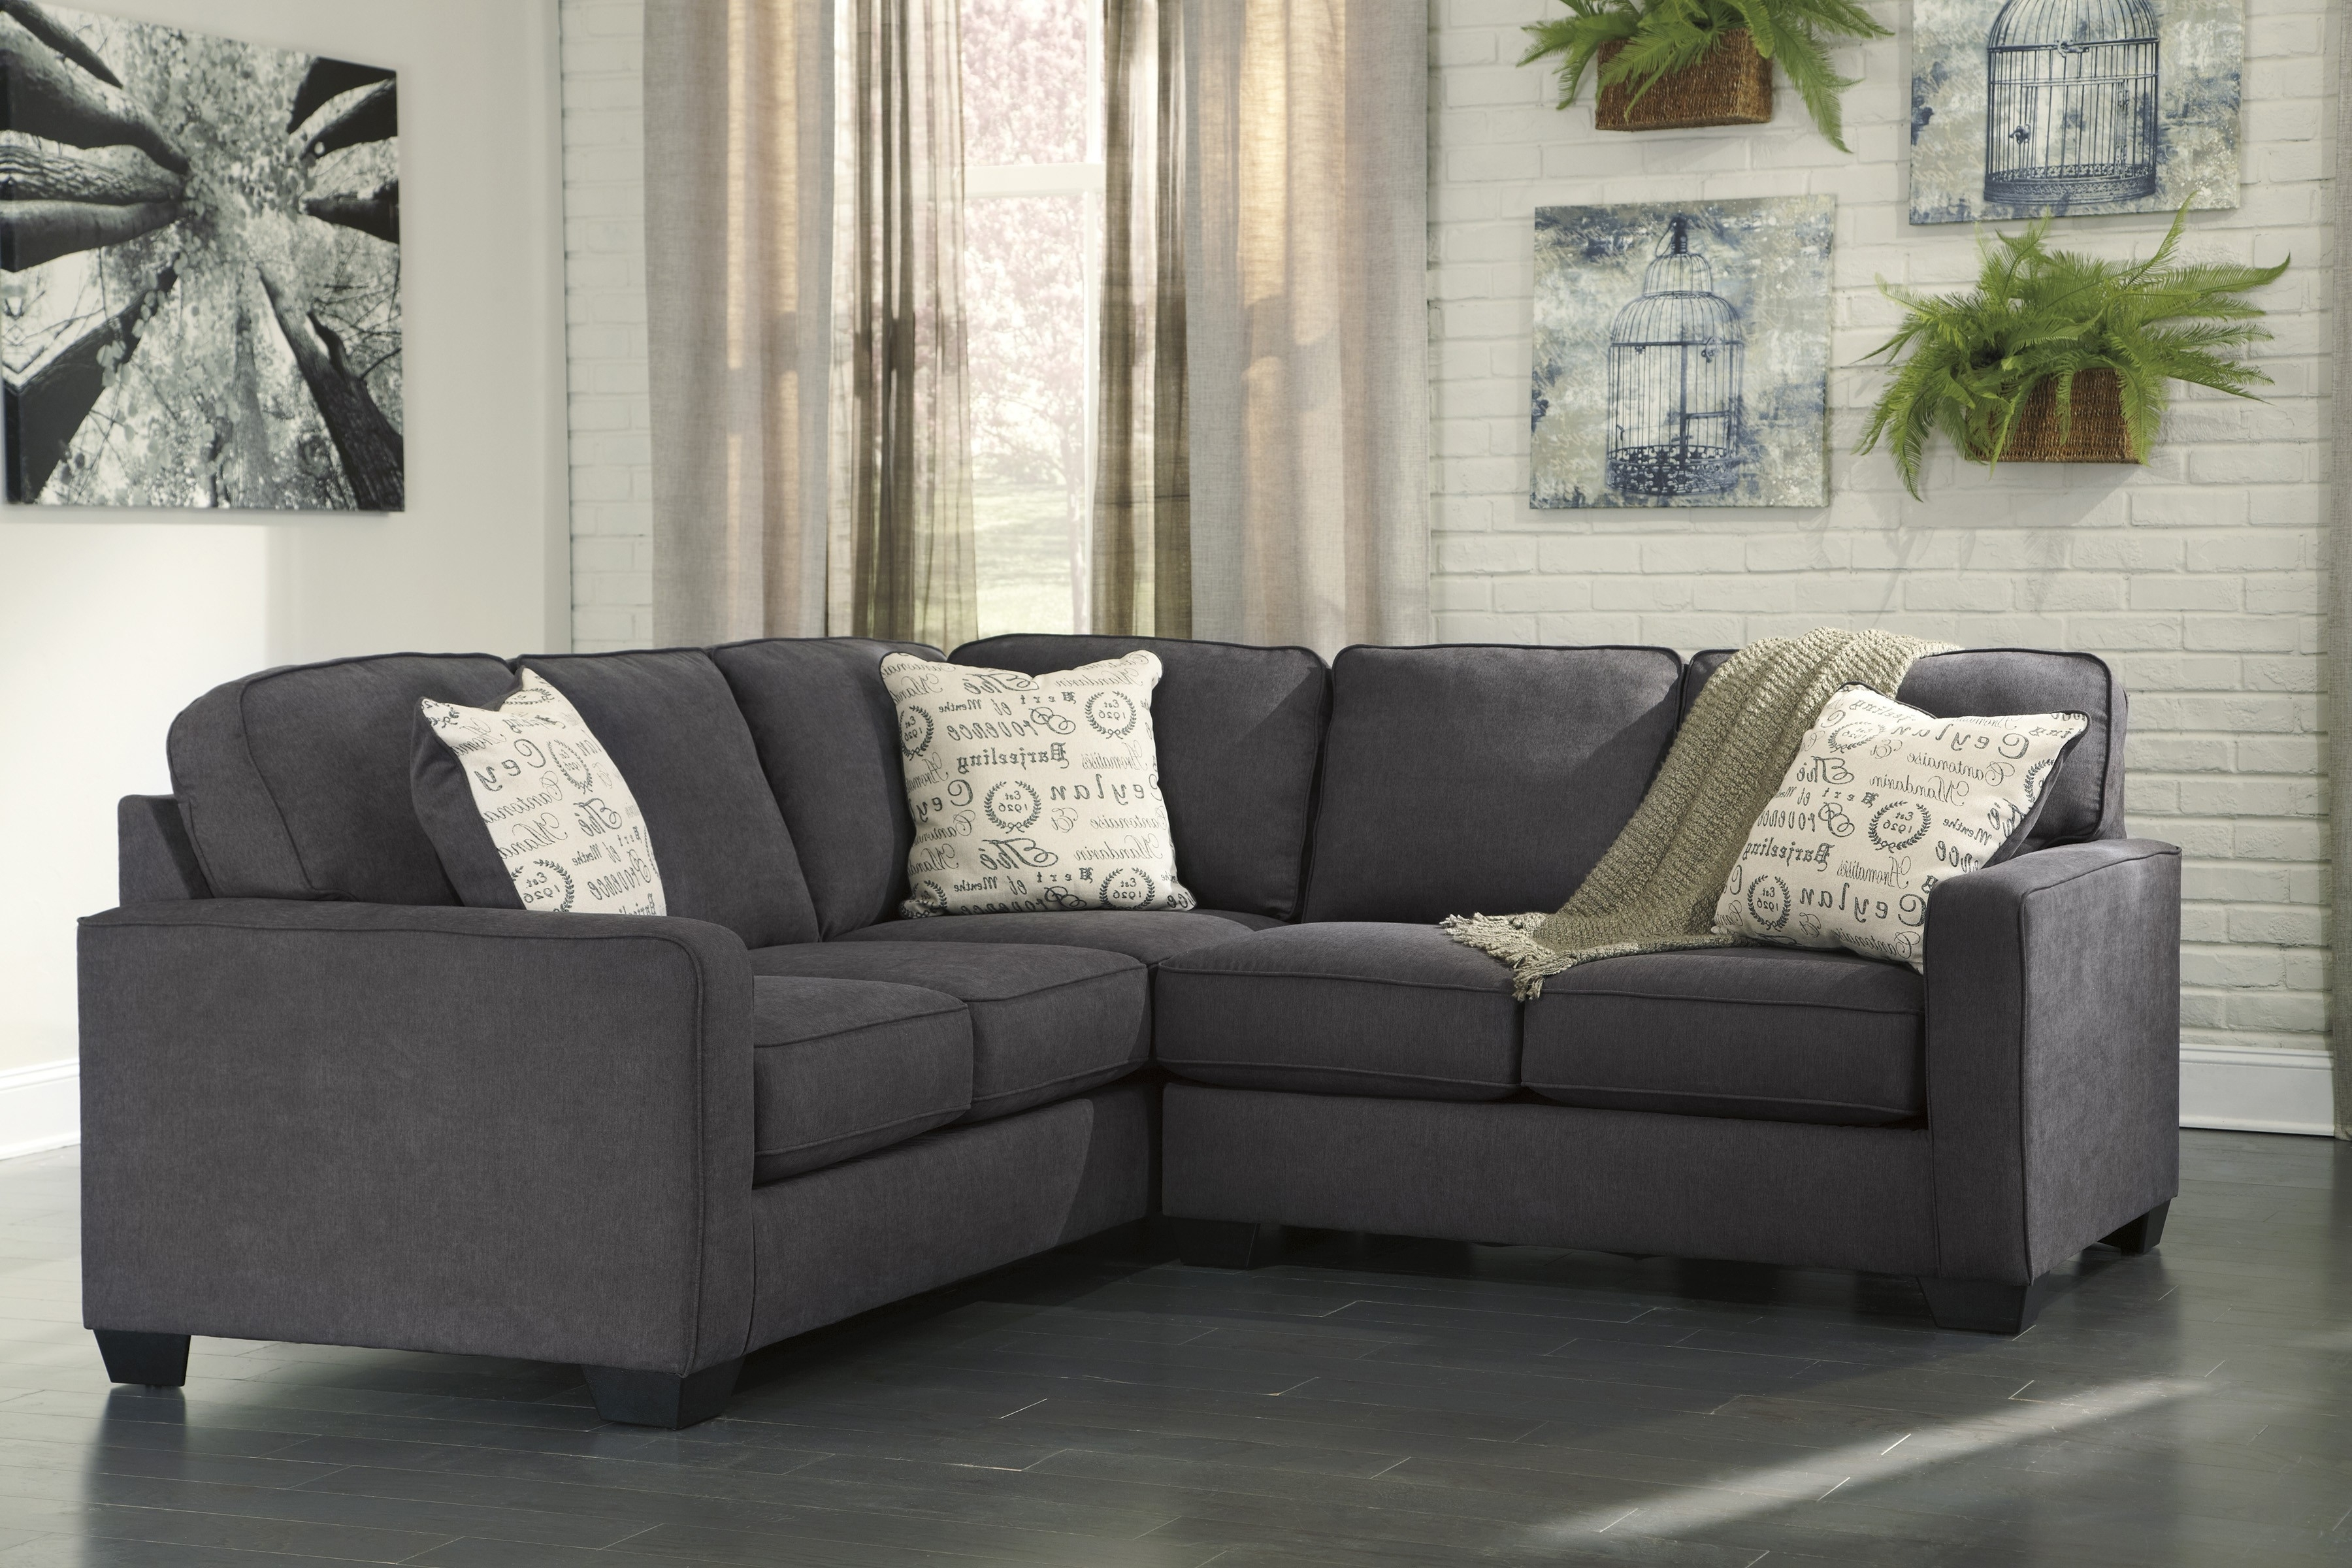 Alenya Charcoal Piece Sectional Sofa For Furnitureusa Raf Love Tures with regard to Evan 2 Piece Sectionals With Raf Chaise (Image 4 of 30)